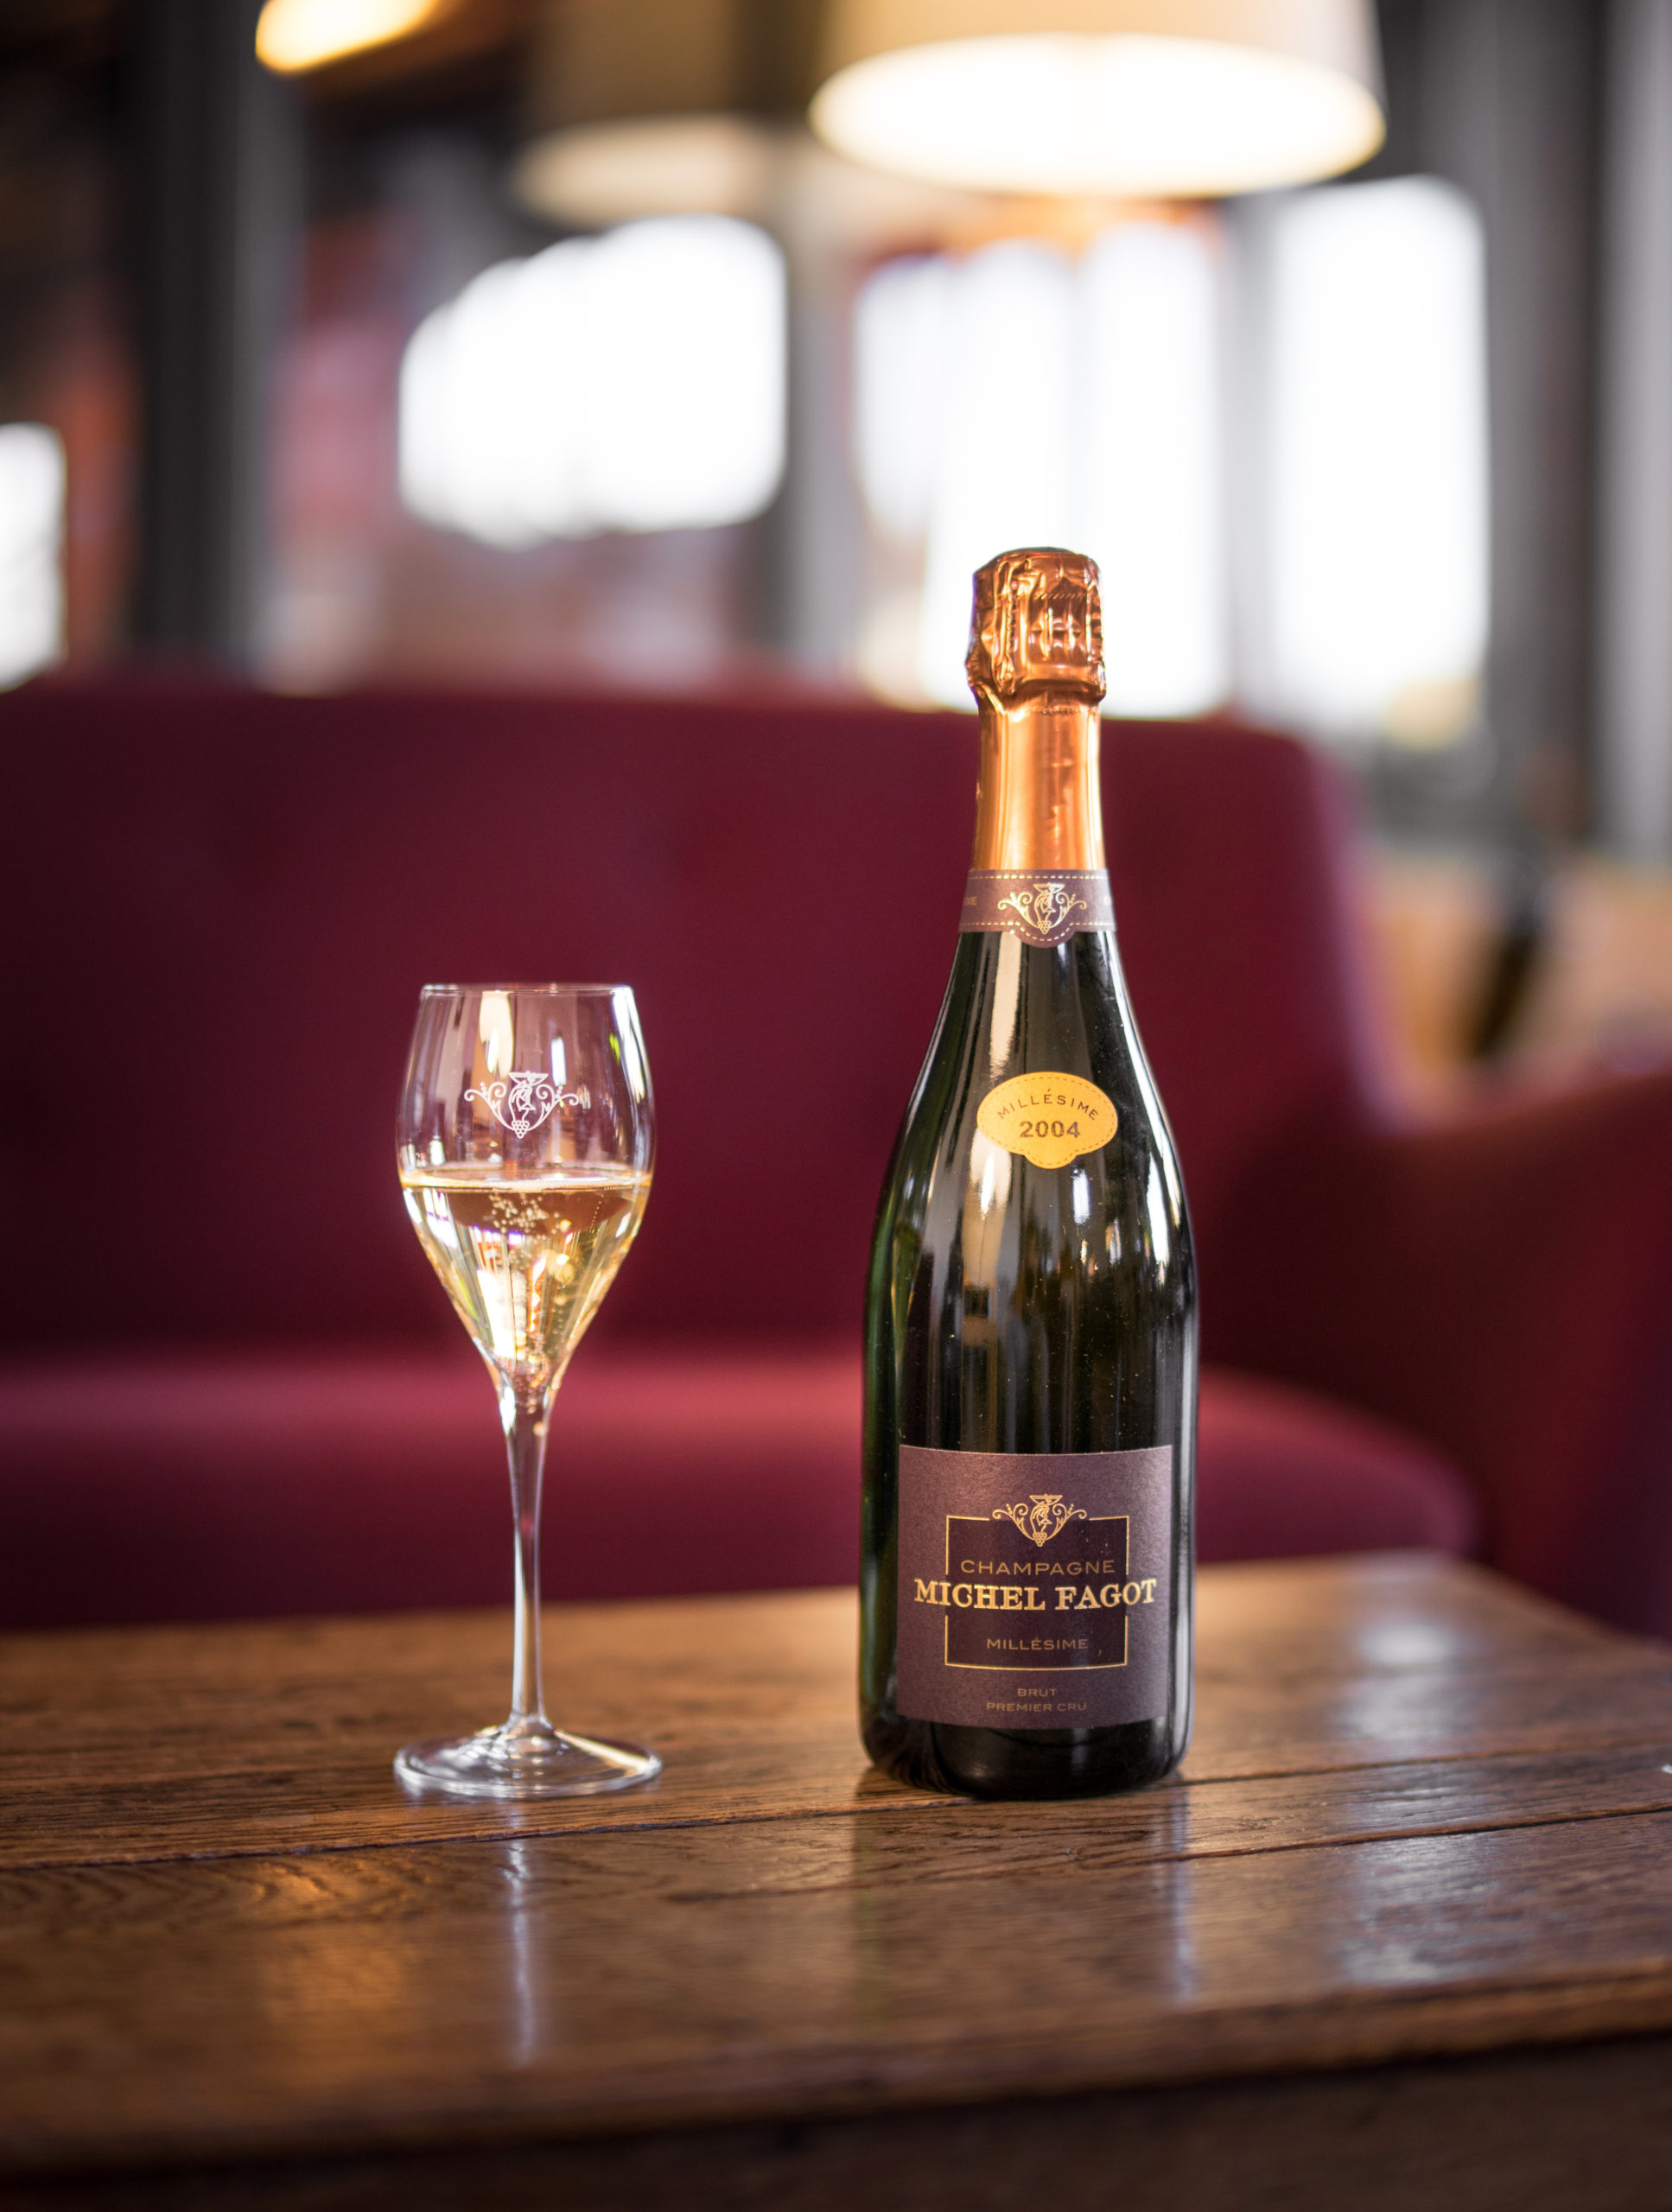 The Vintage of The Champagne House Michel fagot